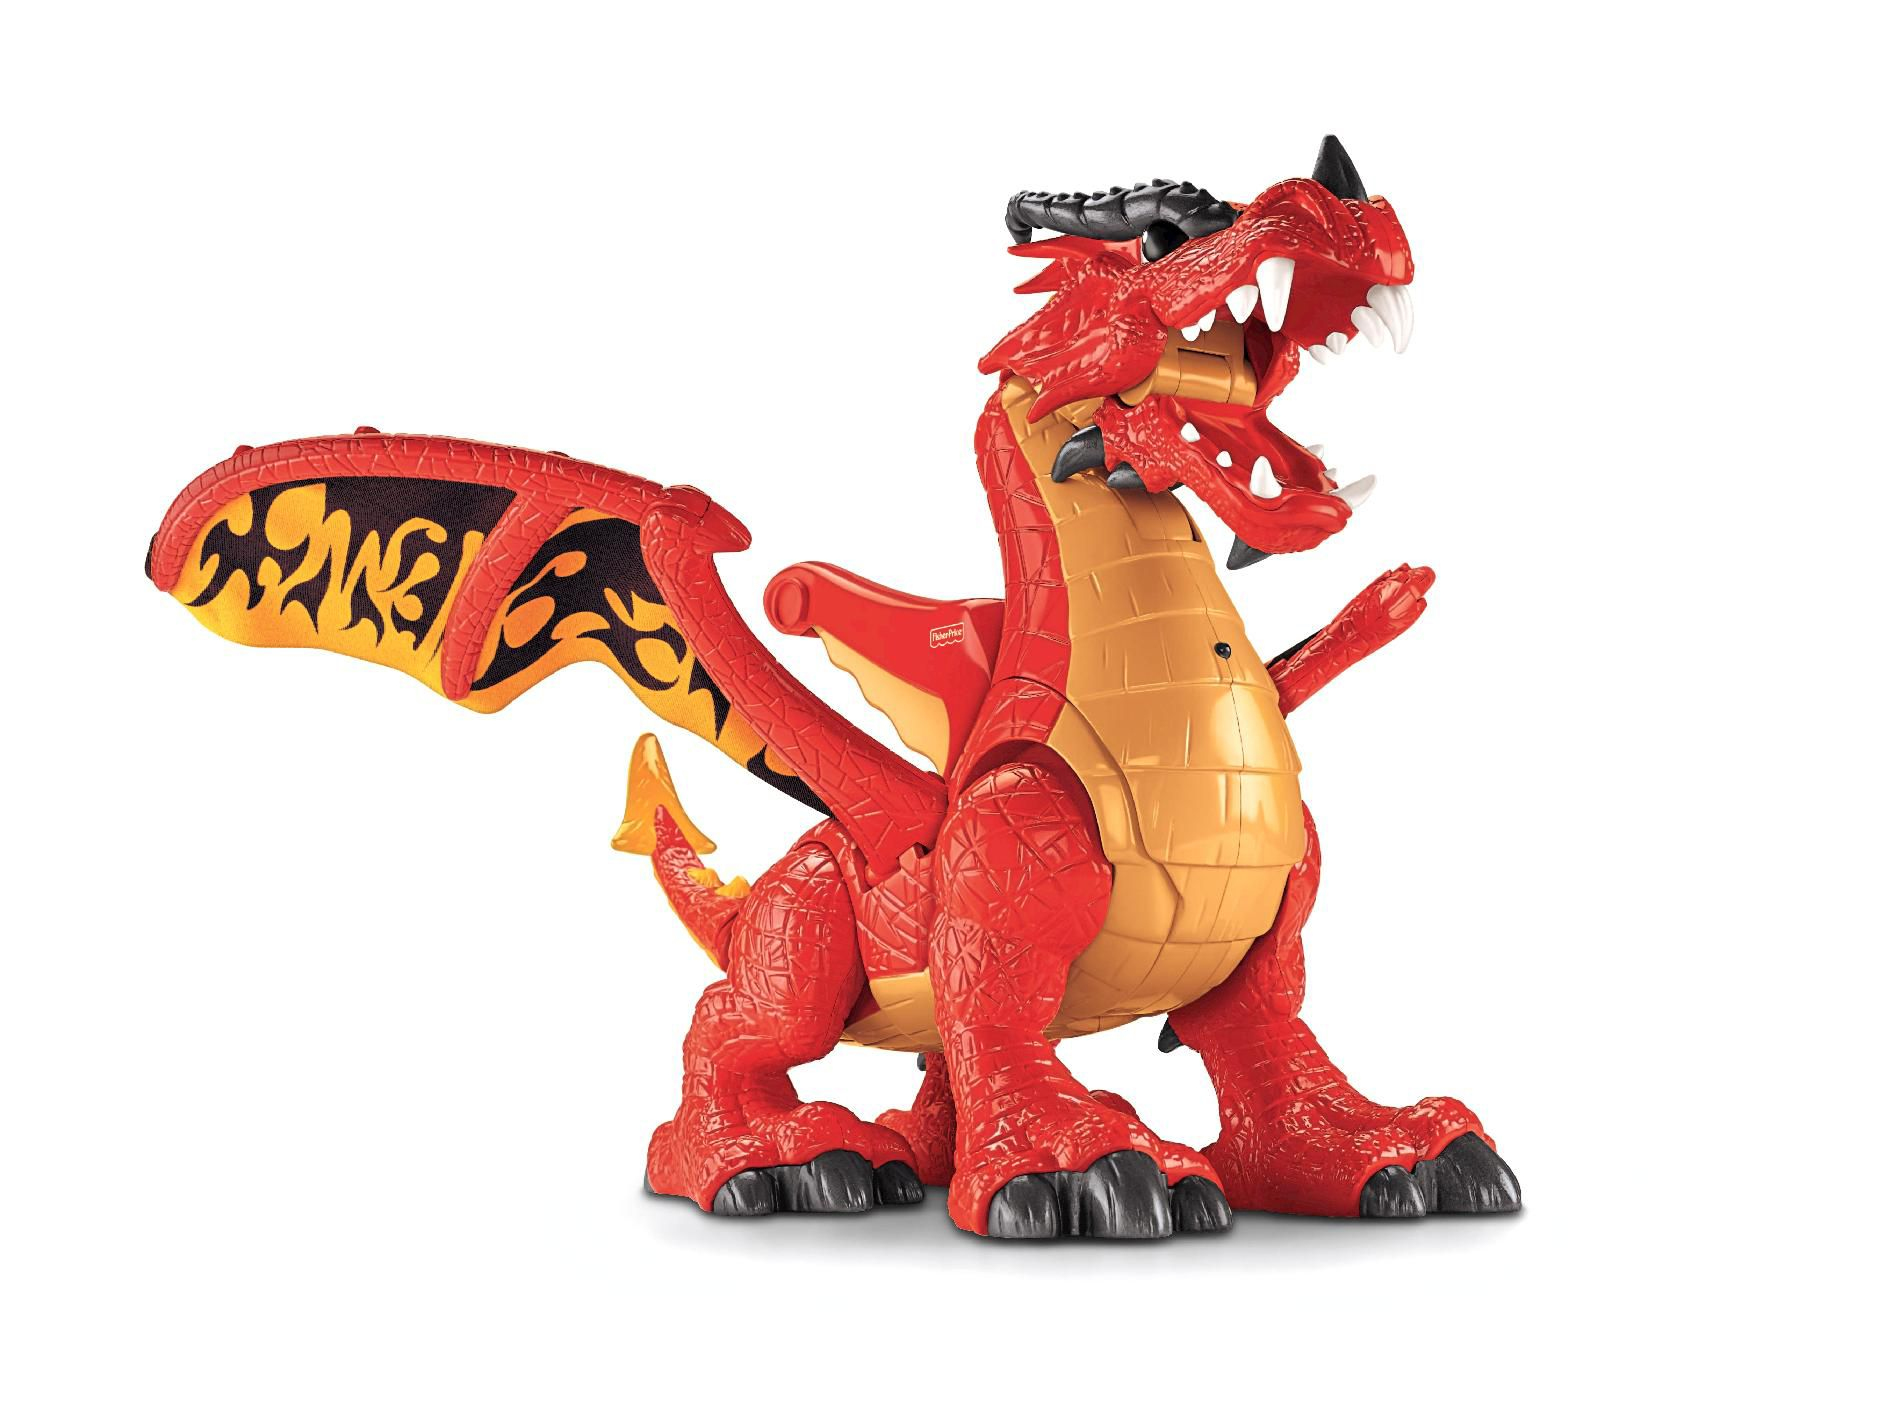 Castle Dragon Imaginext Soar With Dragons